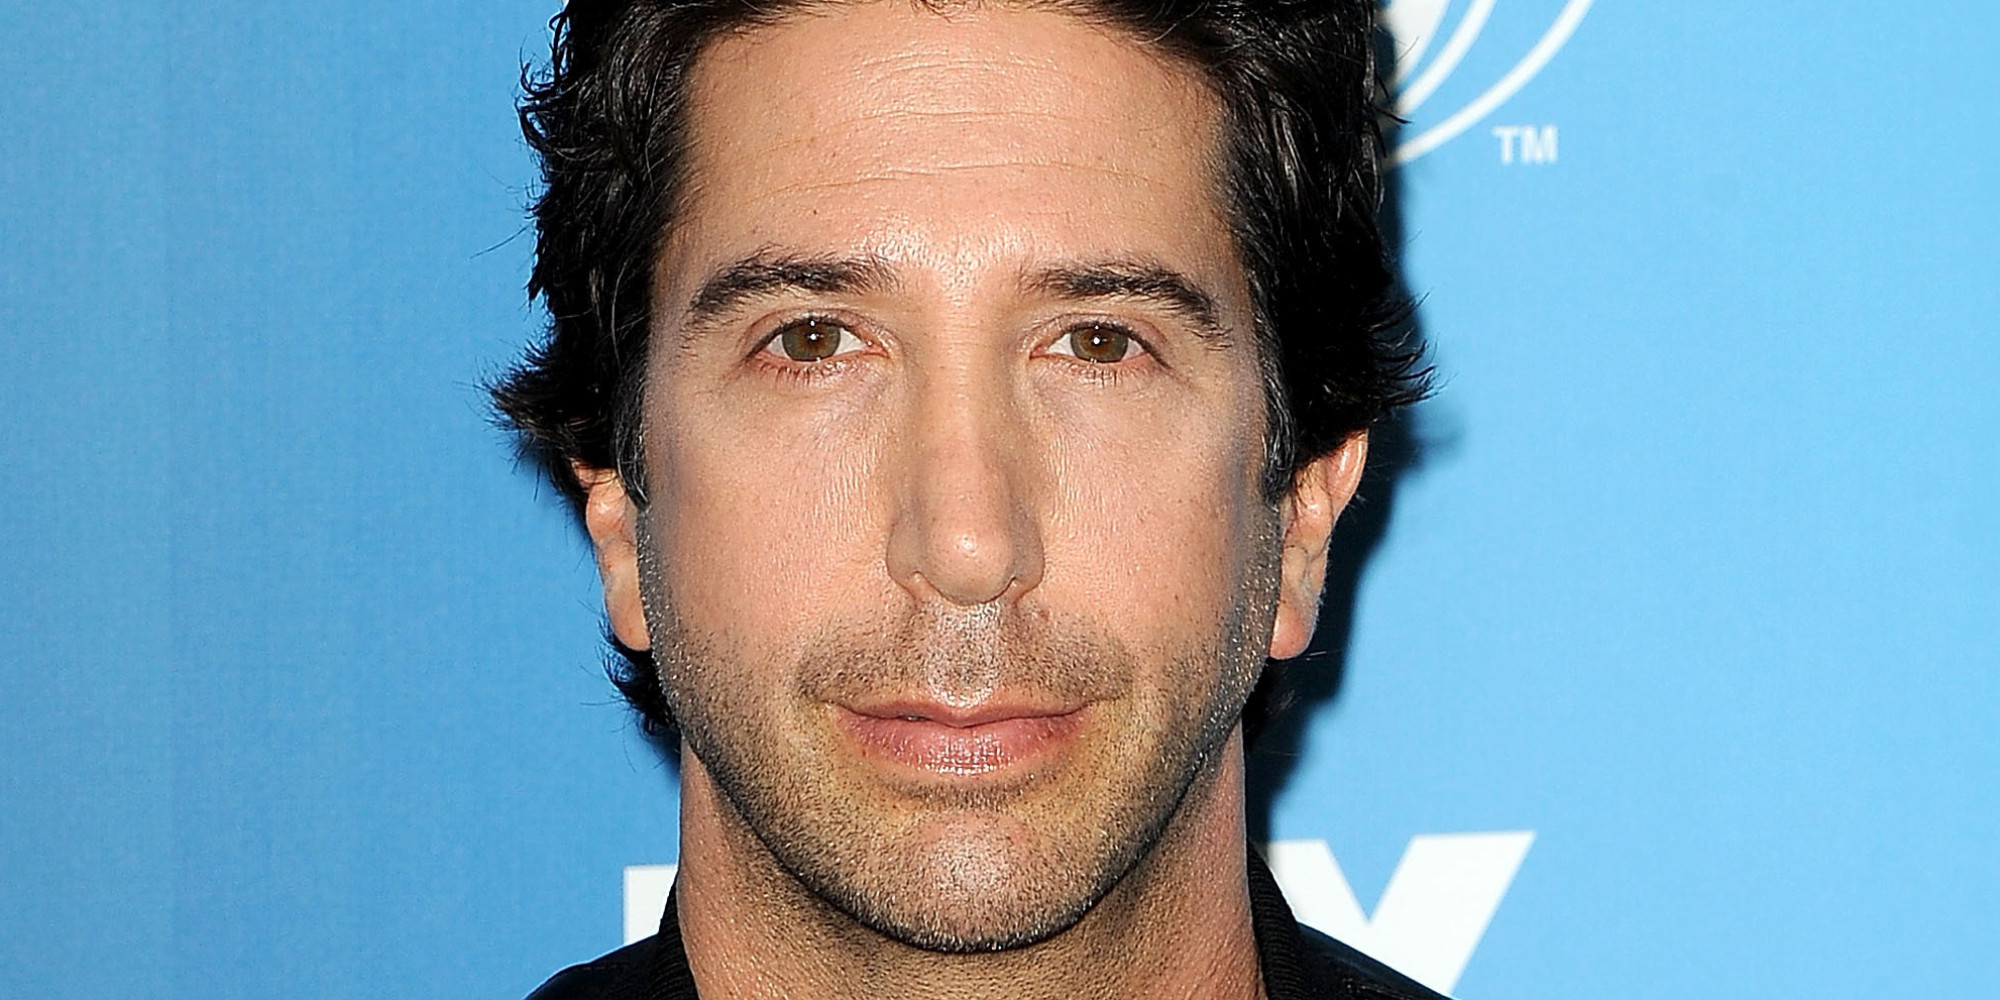 david schwimmer interviewdavid schwimmer 2017, david schwimmer height, david schwimmer wife, david schwimmer young, david schwimmer net worth, david schwimmer 2016, david schwimmer and zoe buckman, david schwimmer interview, david schwimmer robert kardashian, david schwimmer 2015, david schwimmer john carter, david schwimmer wiki, david schwimmer director, david schwimmer parents, david schwimmer movies, david schwimmer accident, david schwimmer home, david schwimmer eye color, david schwimmer films, david schwimmer rap battle